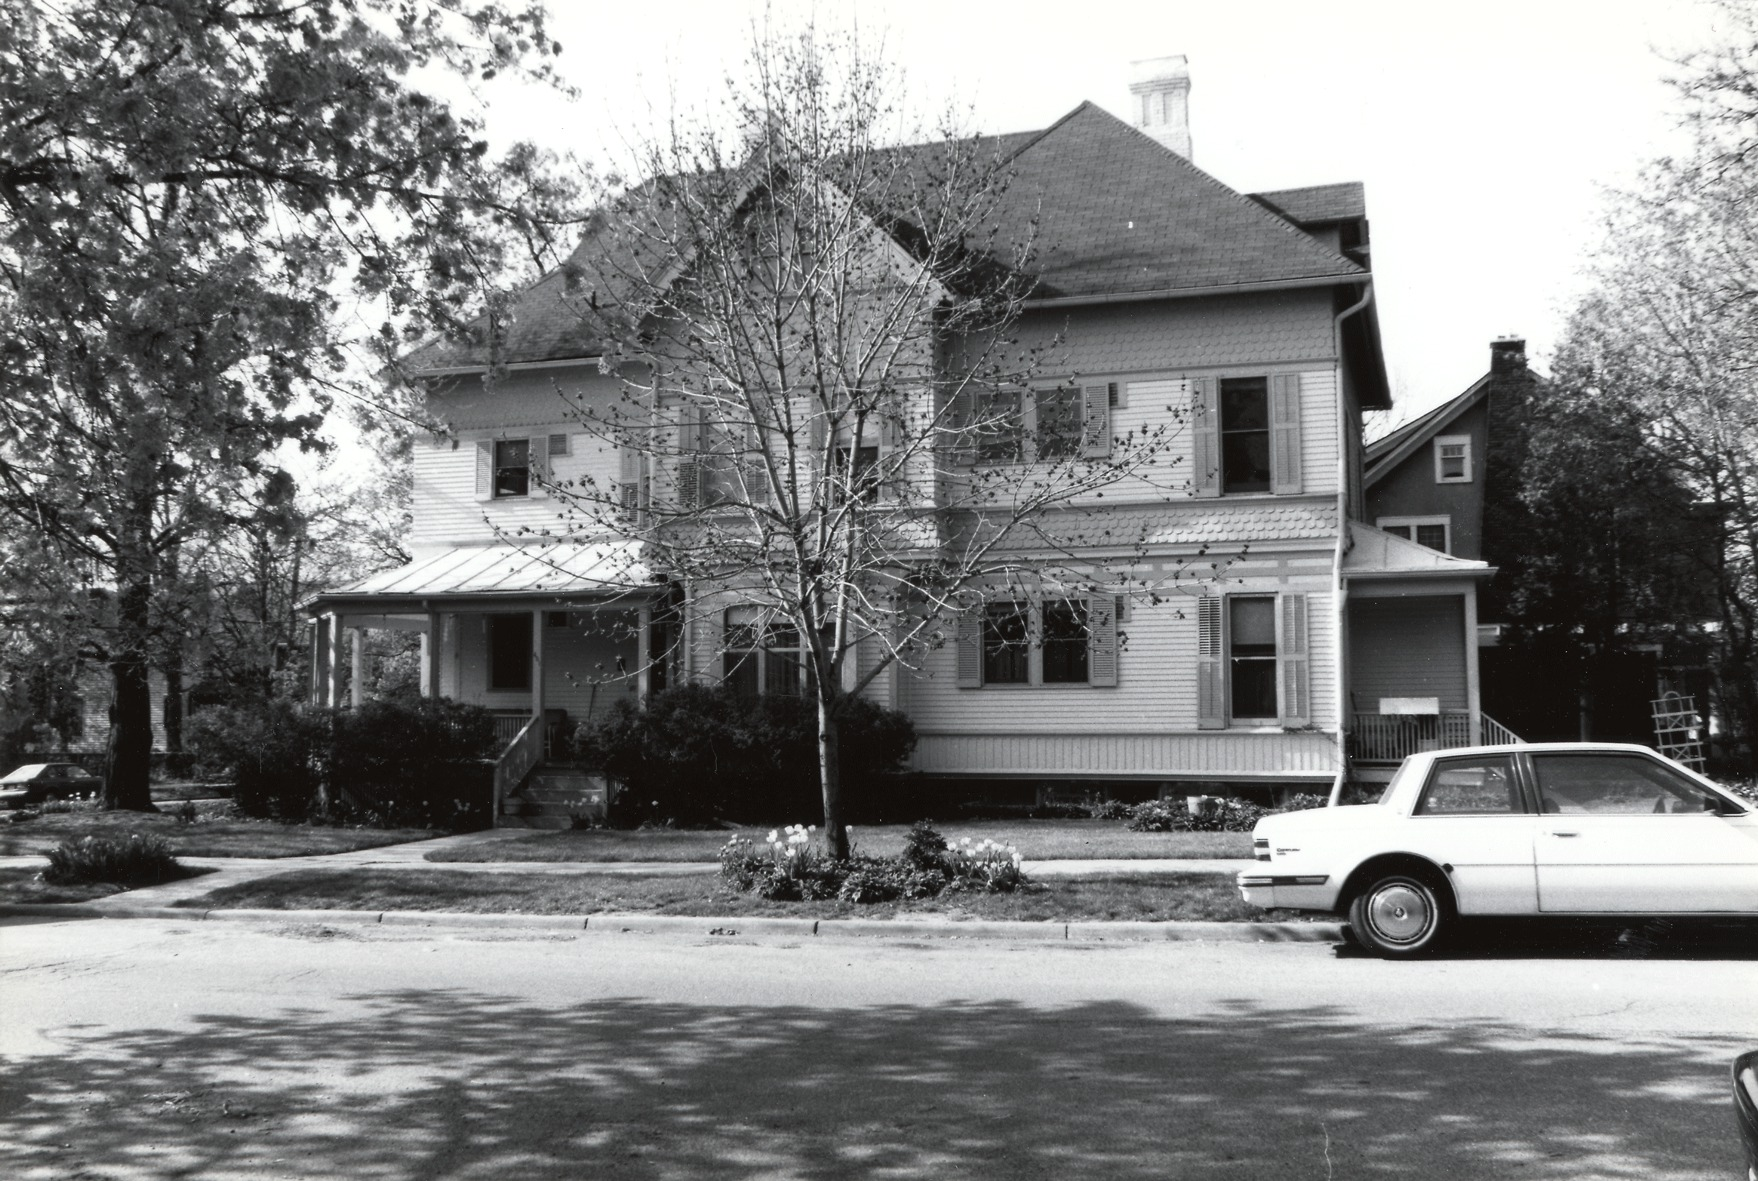 David Rinsey House, 1890 image